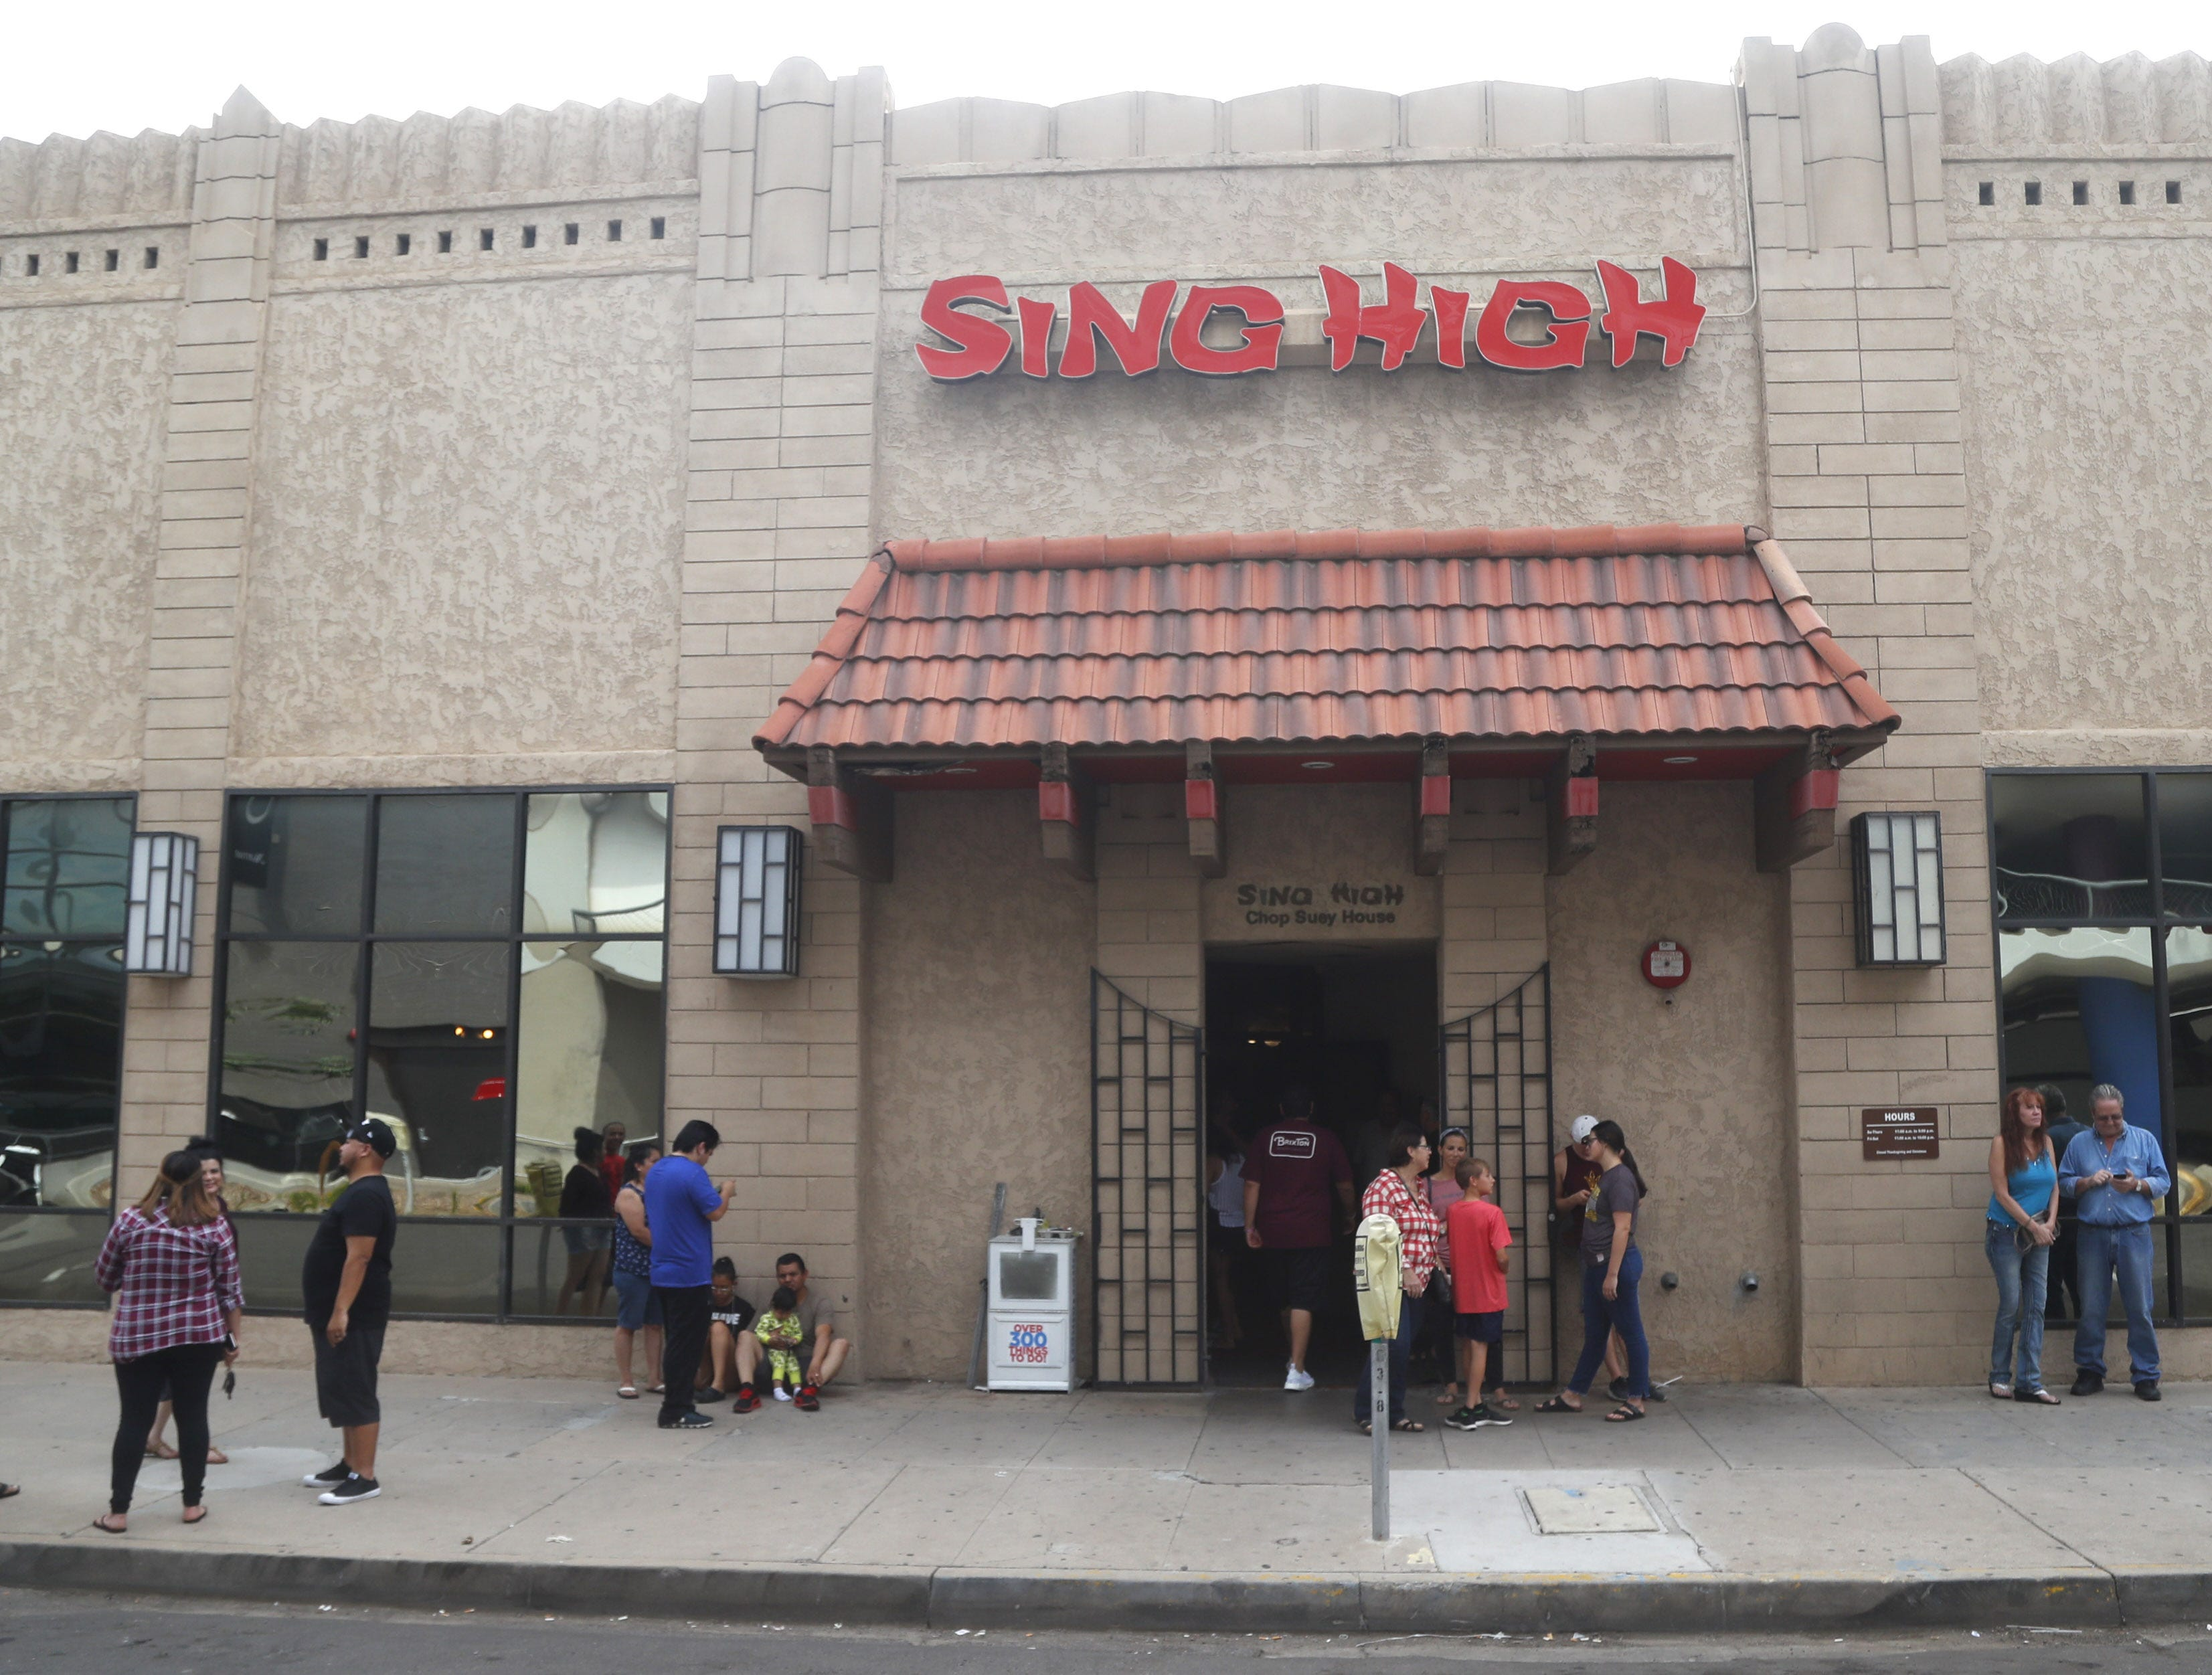 People wait to eat at Sing High Chop Suey House in downtown Phoenix, Ariz. on Sept. 30, 2018.